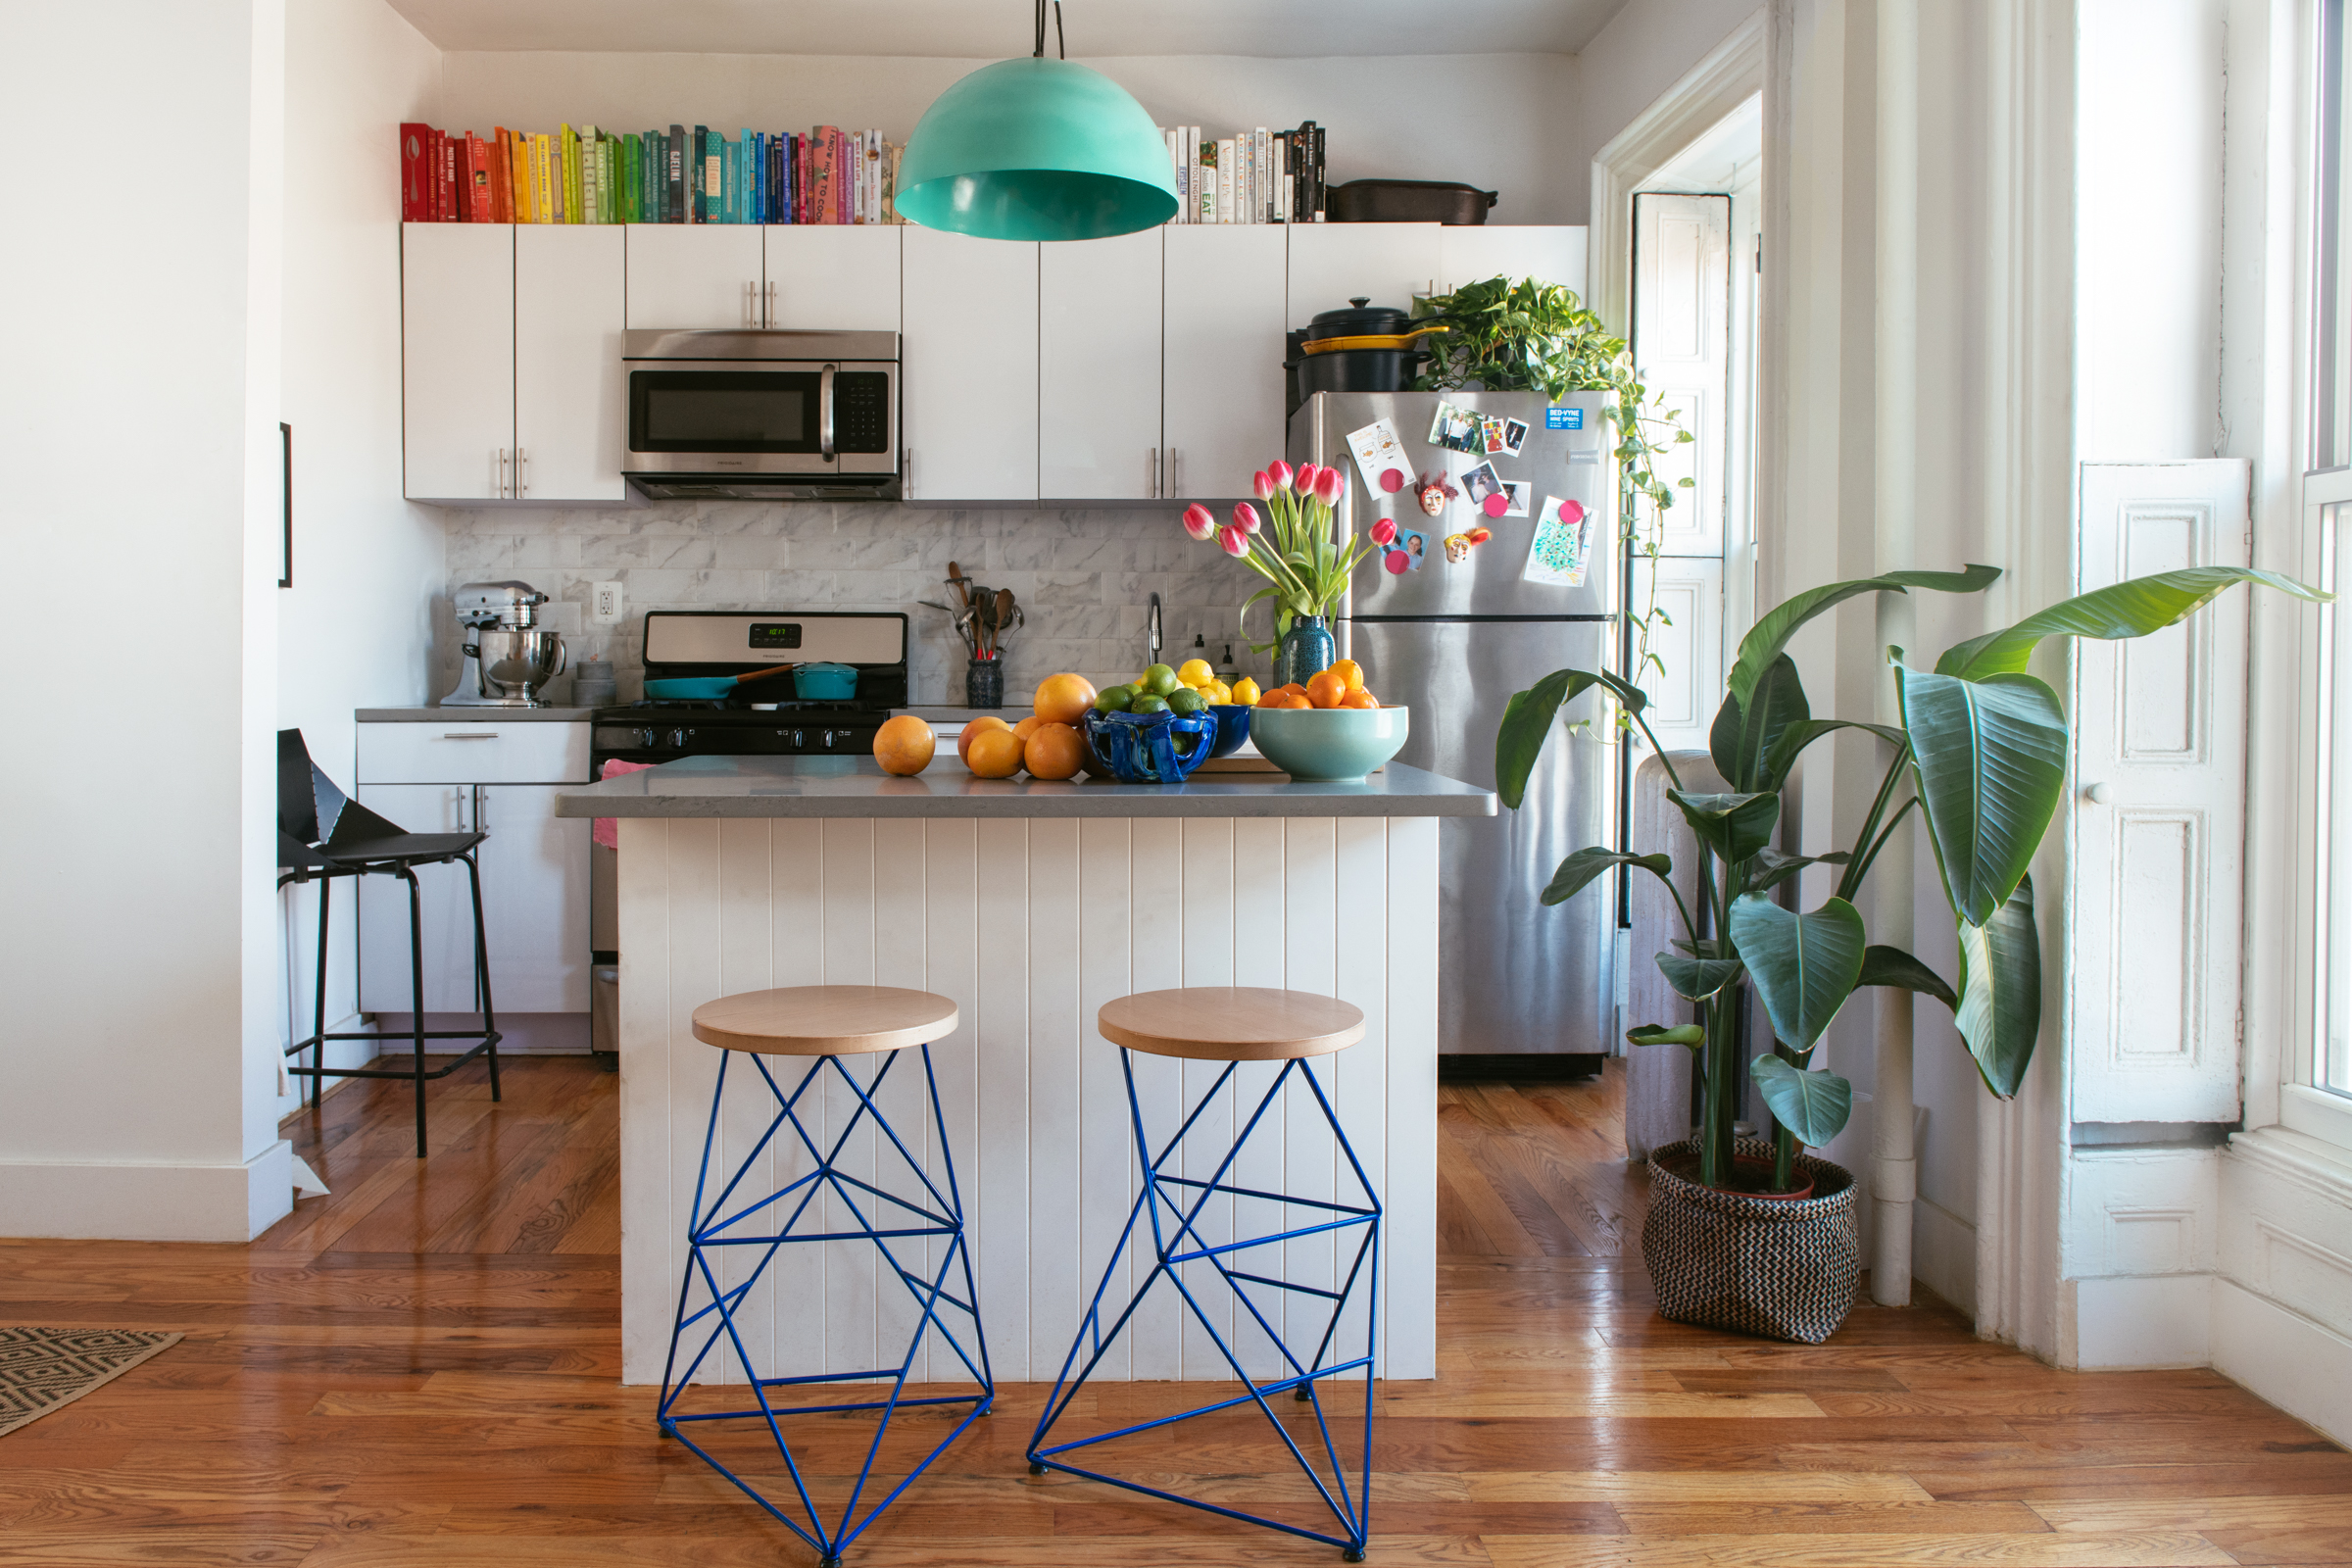 A small but sunny Brooklyn apartment kitchen that is an example of home organization. A small kitchen island, with bowls of colorful fruit displayed on its surface, sits central with two brightly colored modern stools. Behind the island, on the back wall, there are simple white cabinets with colorful books stored on top. Photograph.